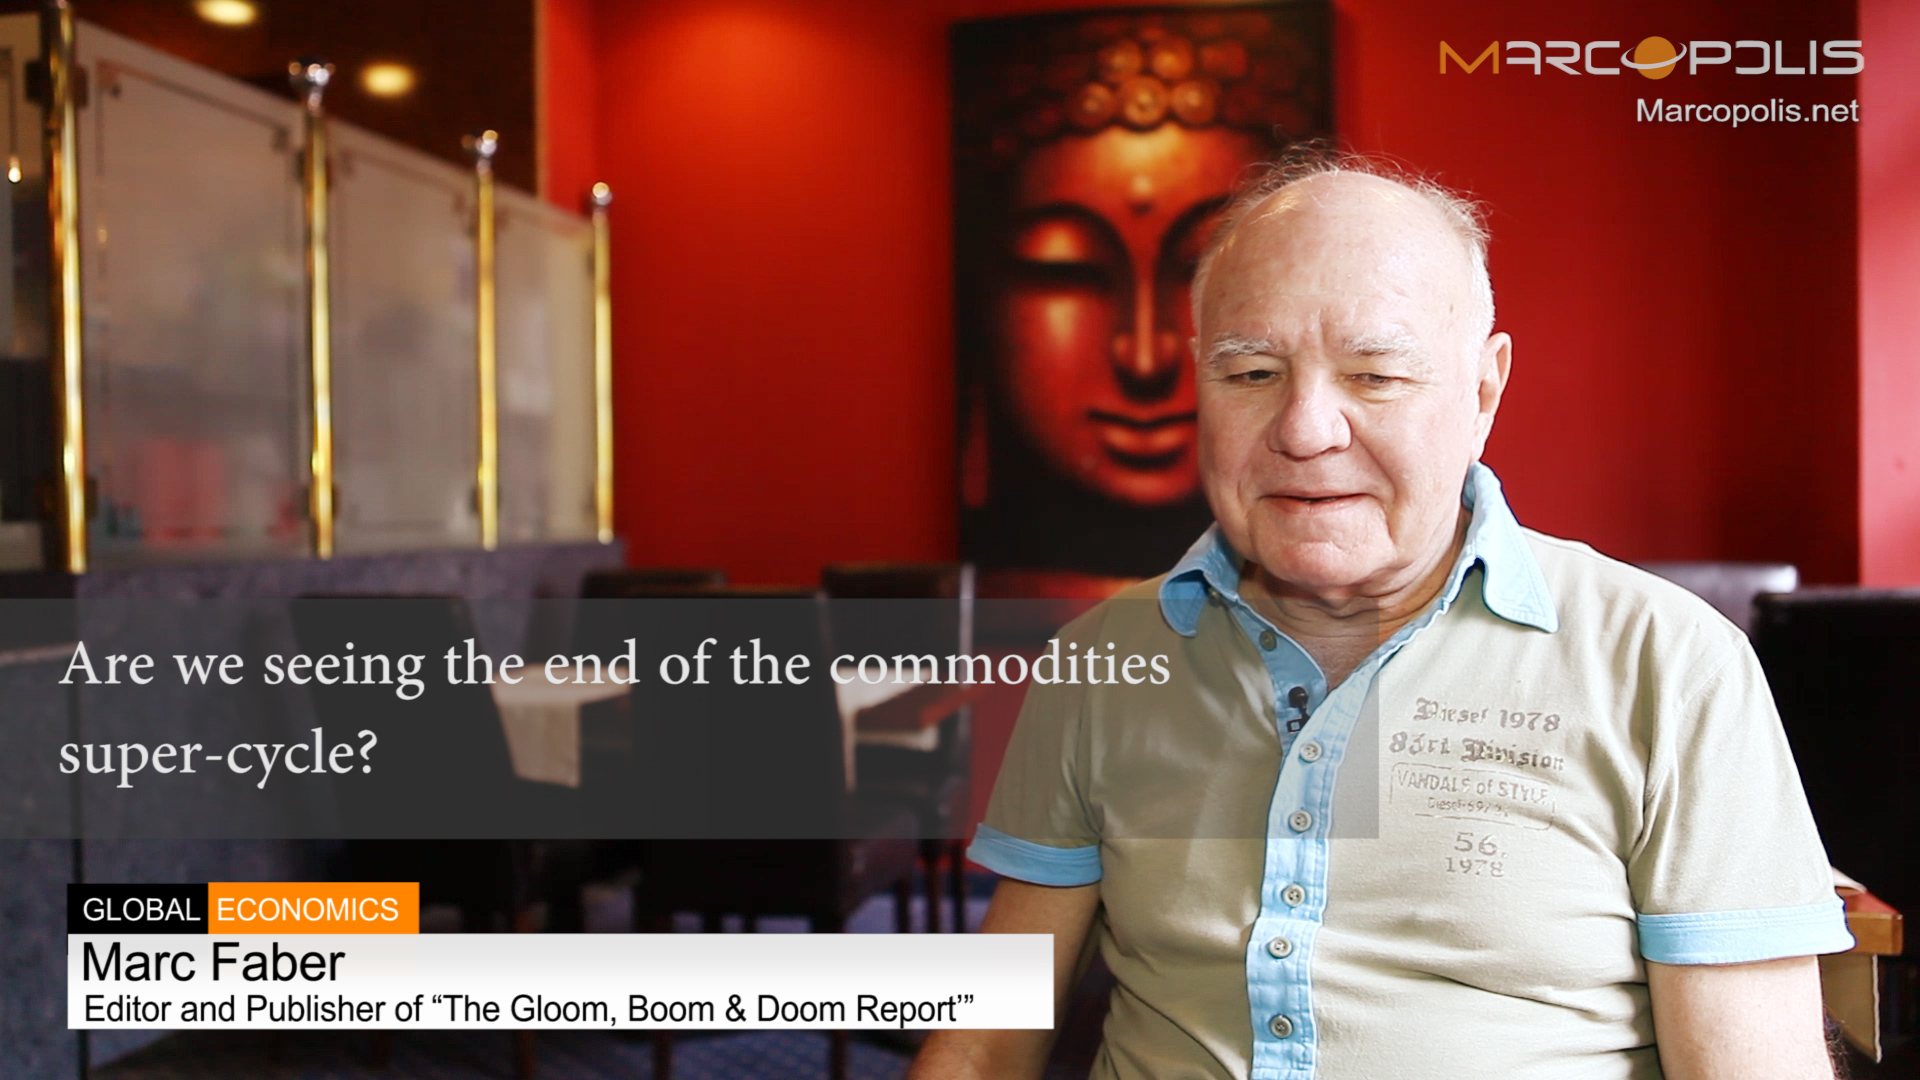 Marc Faber on commodities and commodities-super-cycle